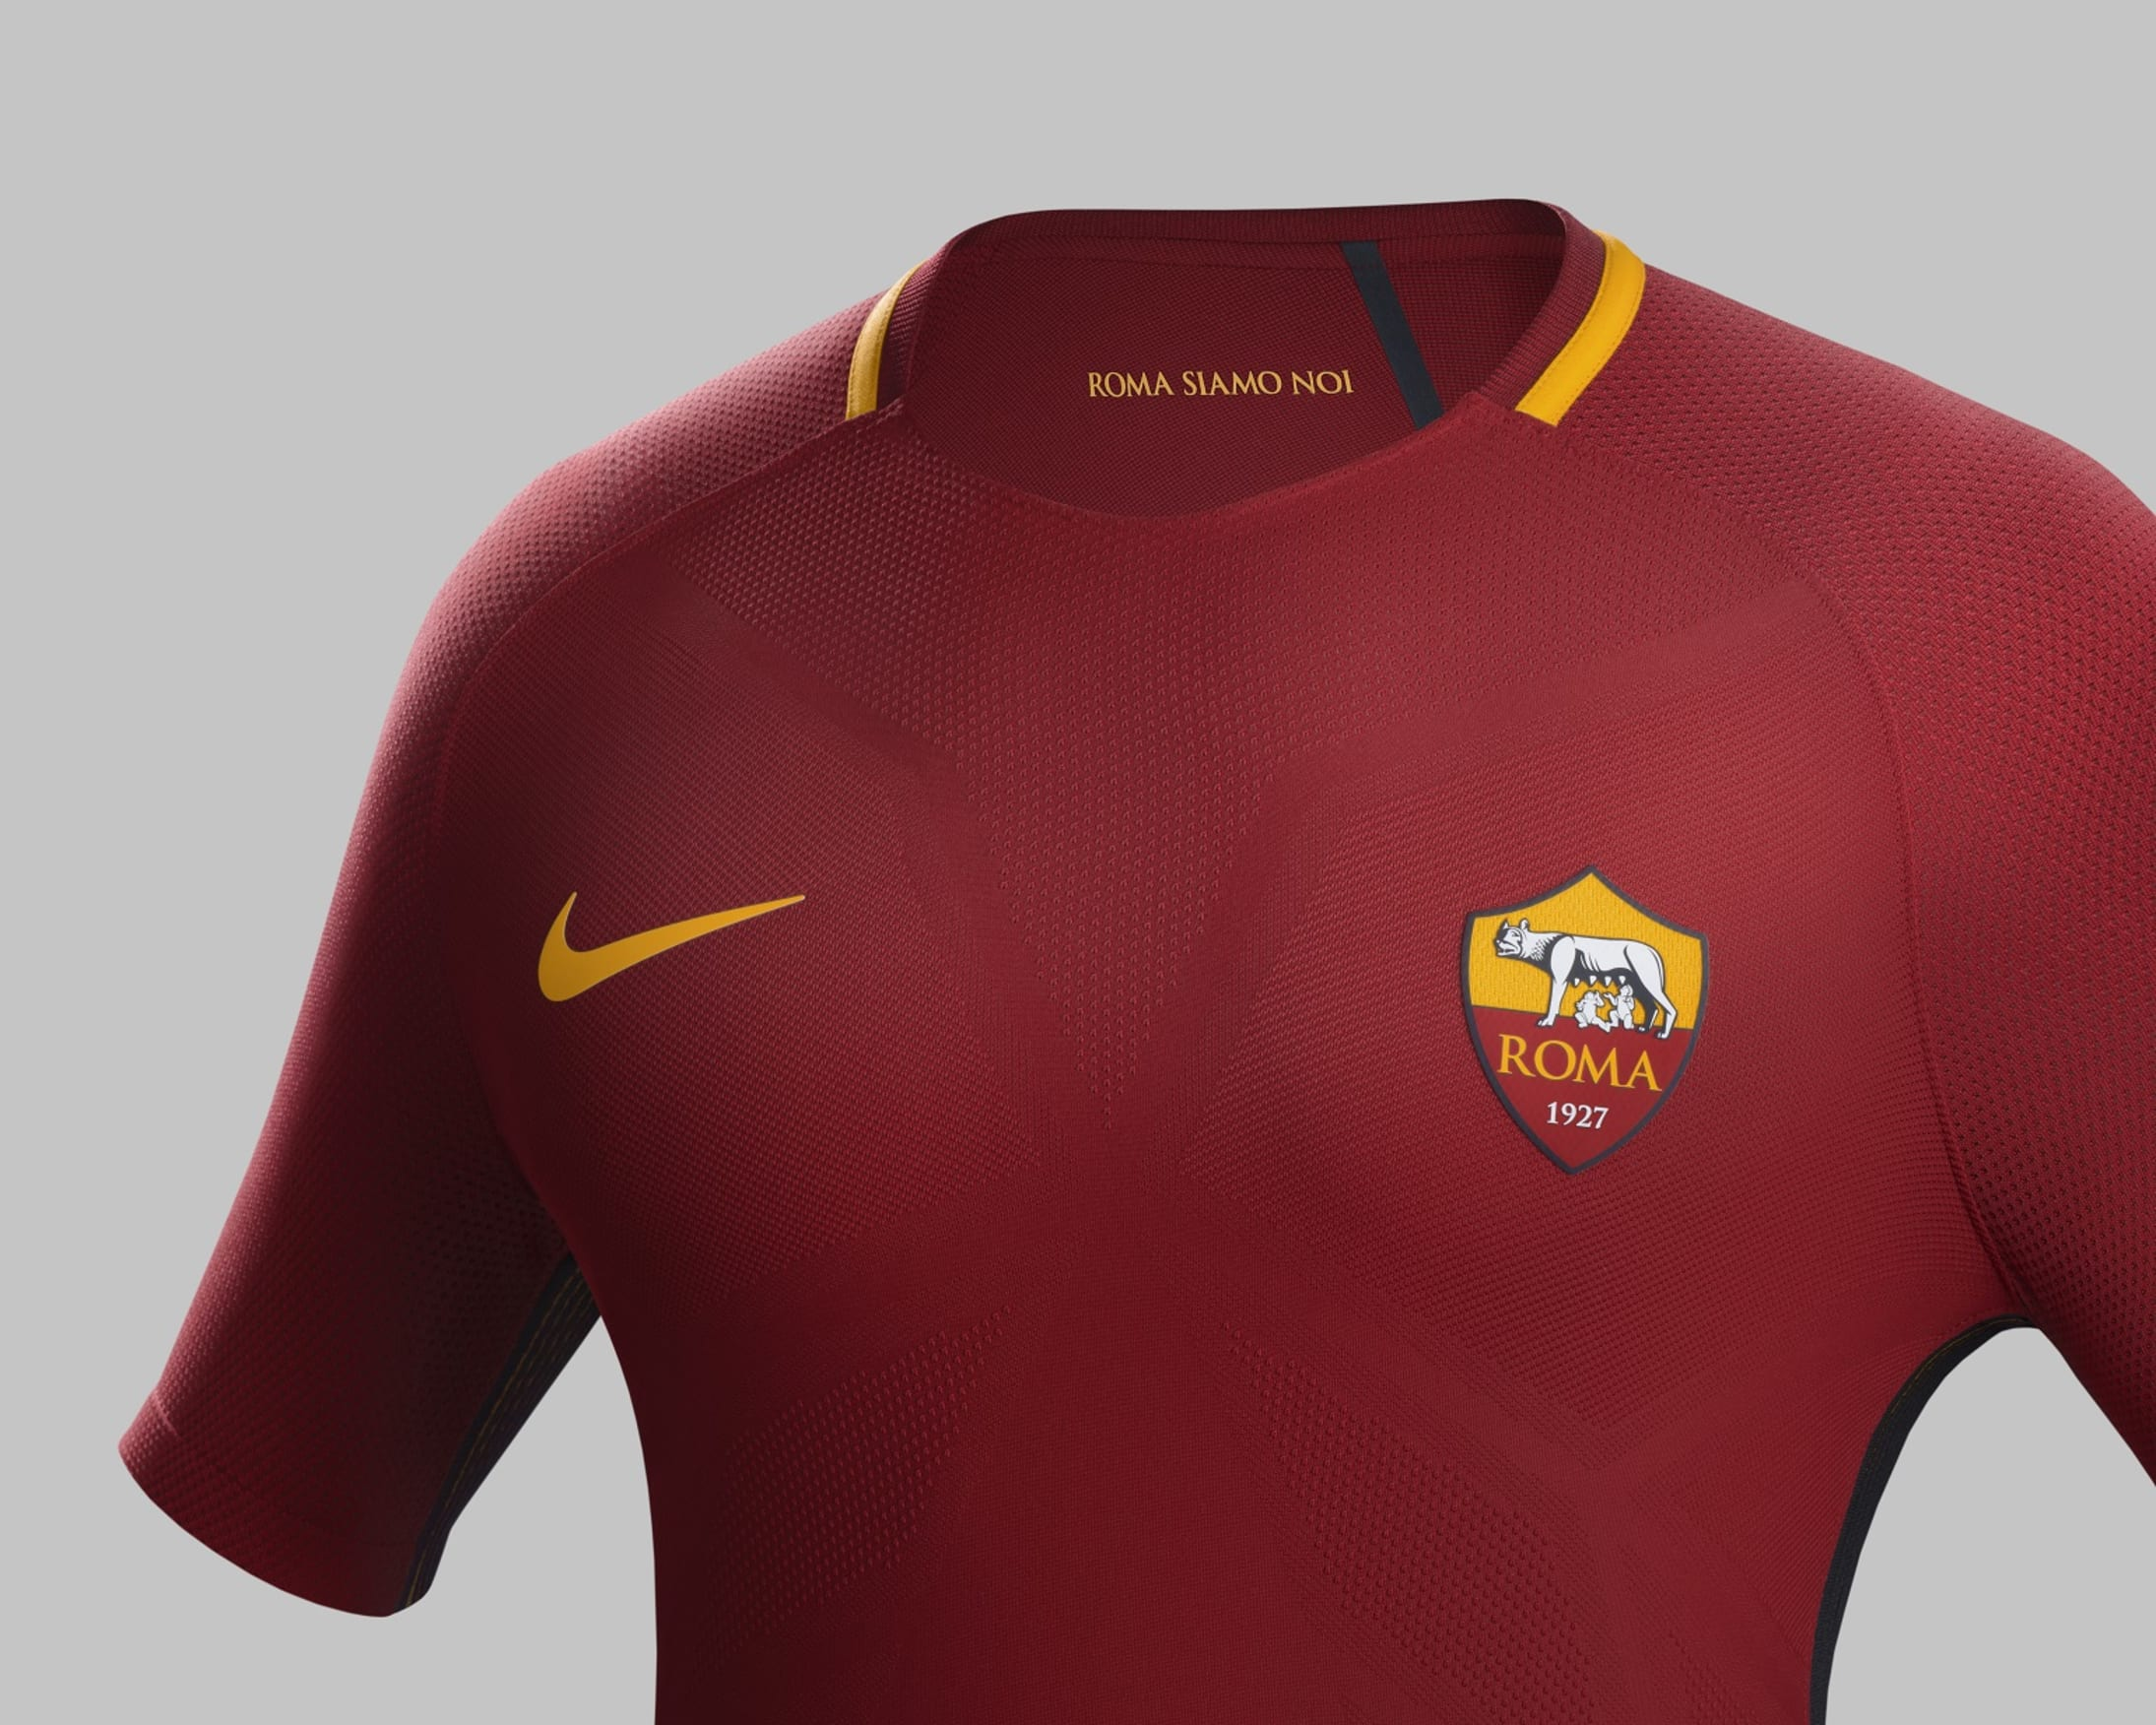 Buy AS Roma's new Nike home kit for the 2017-18 season now